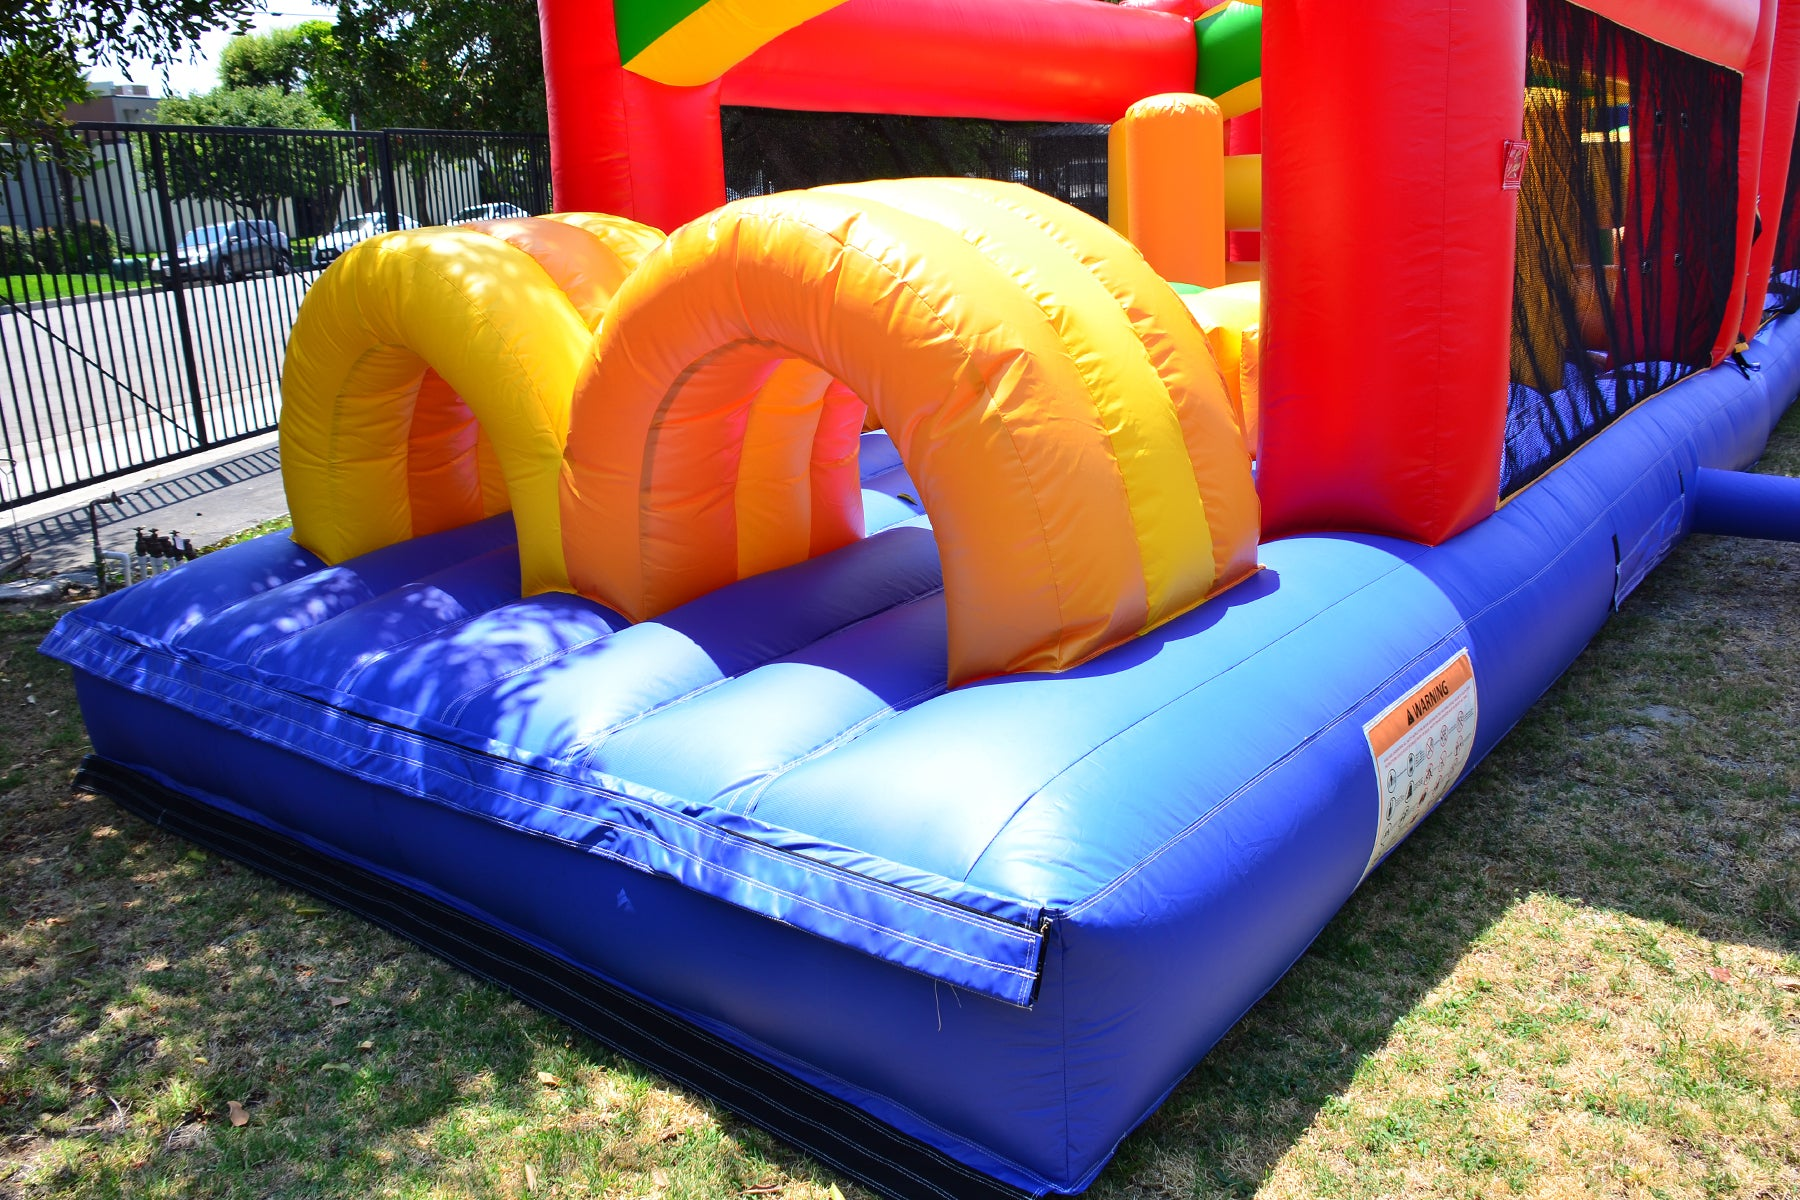 40 FT RAINBOW MEGA OBSTACLE COURSE